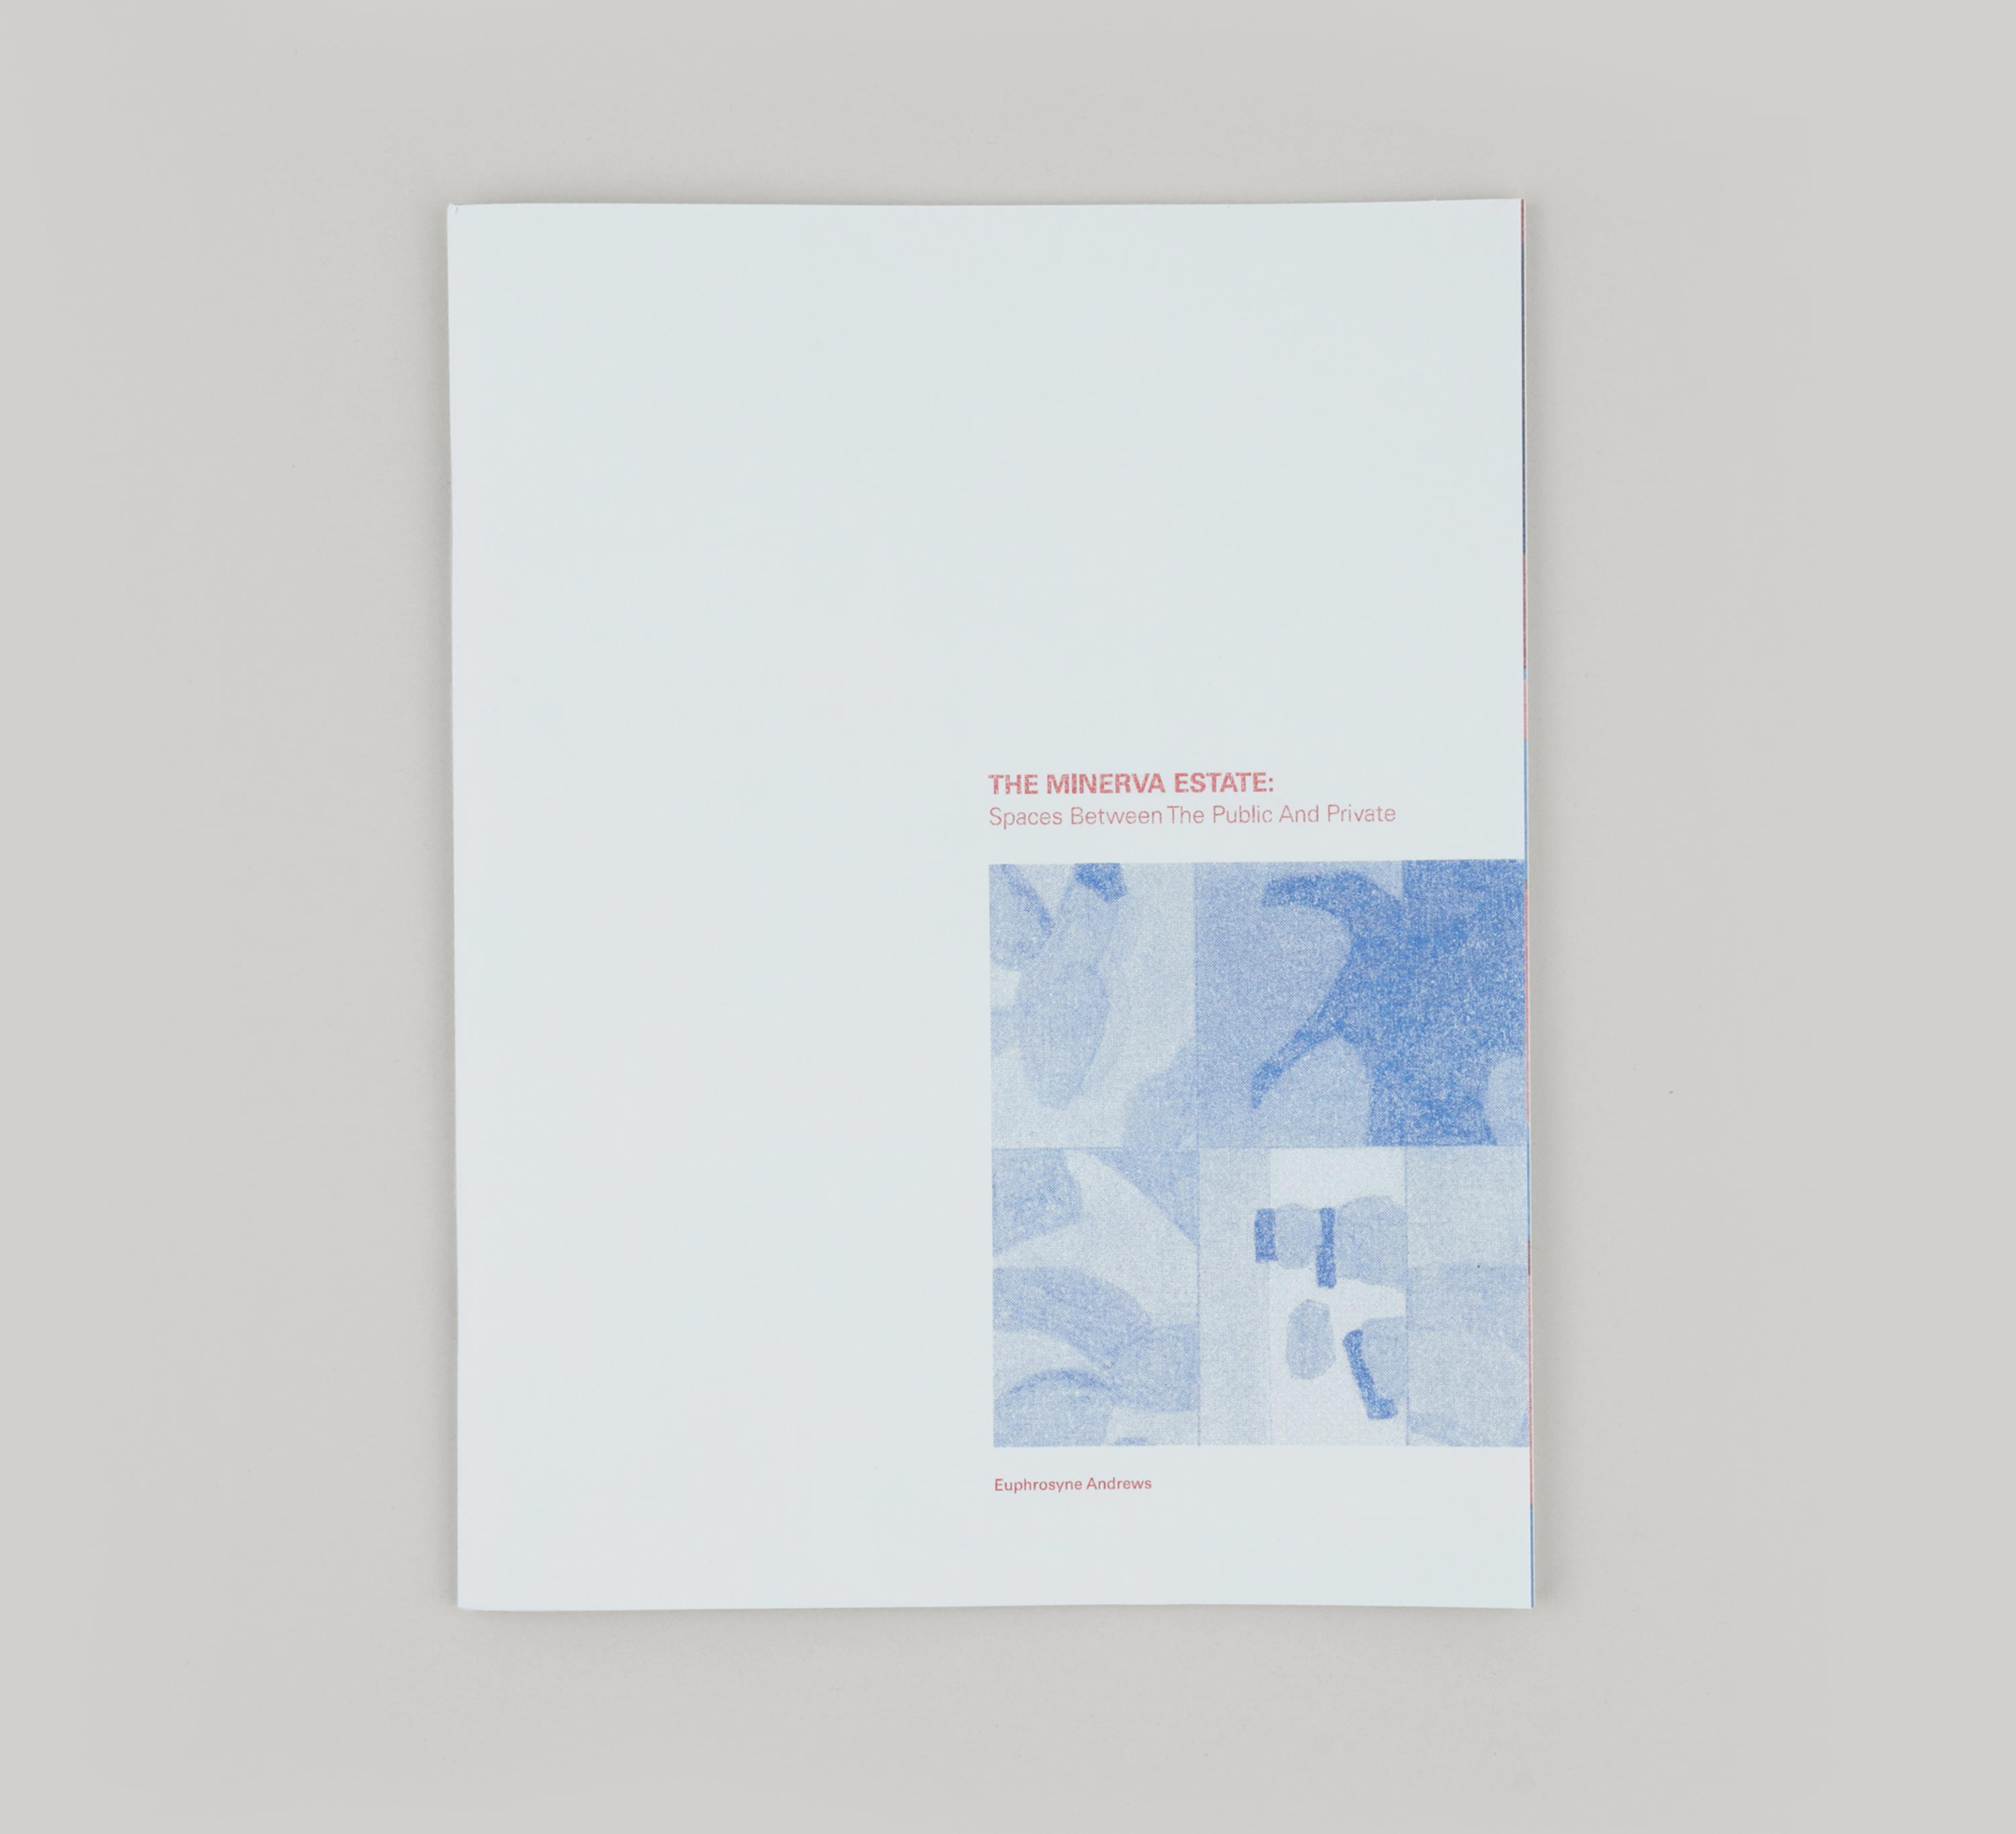 Foolscap Editions Collected Arrangements 